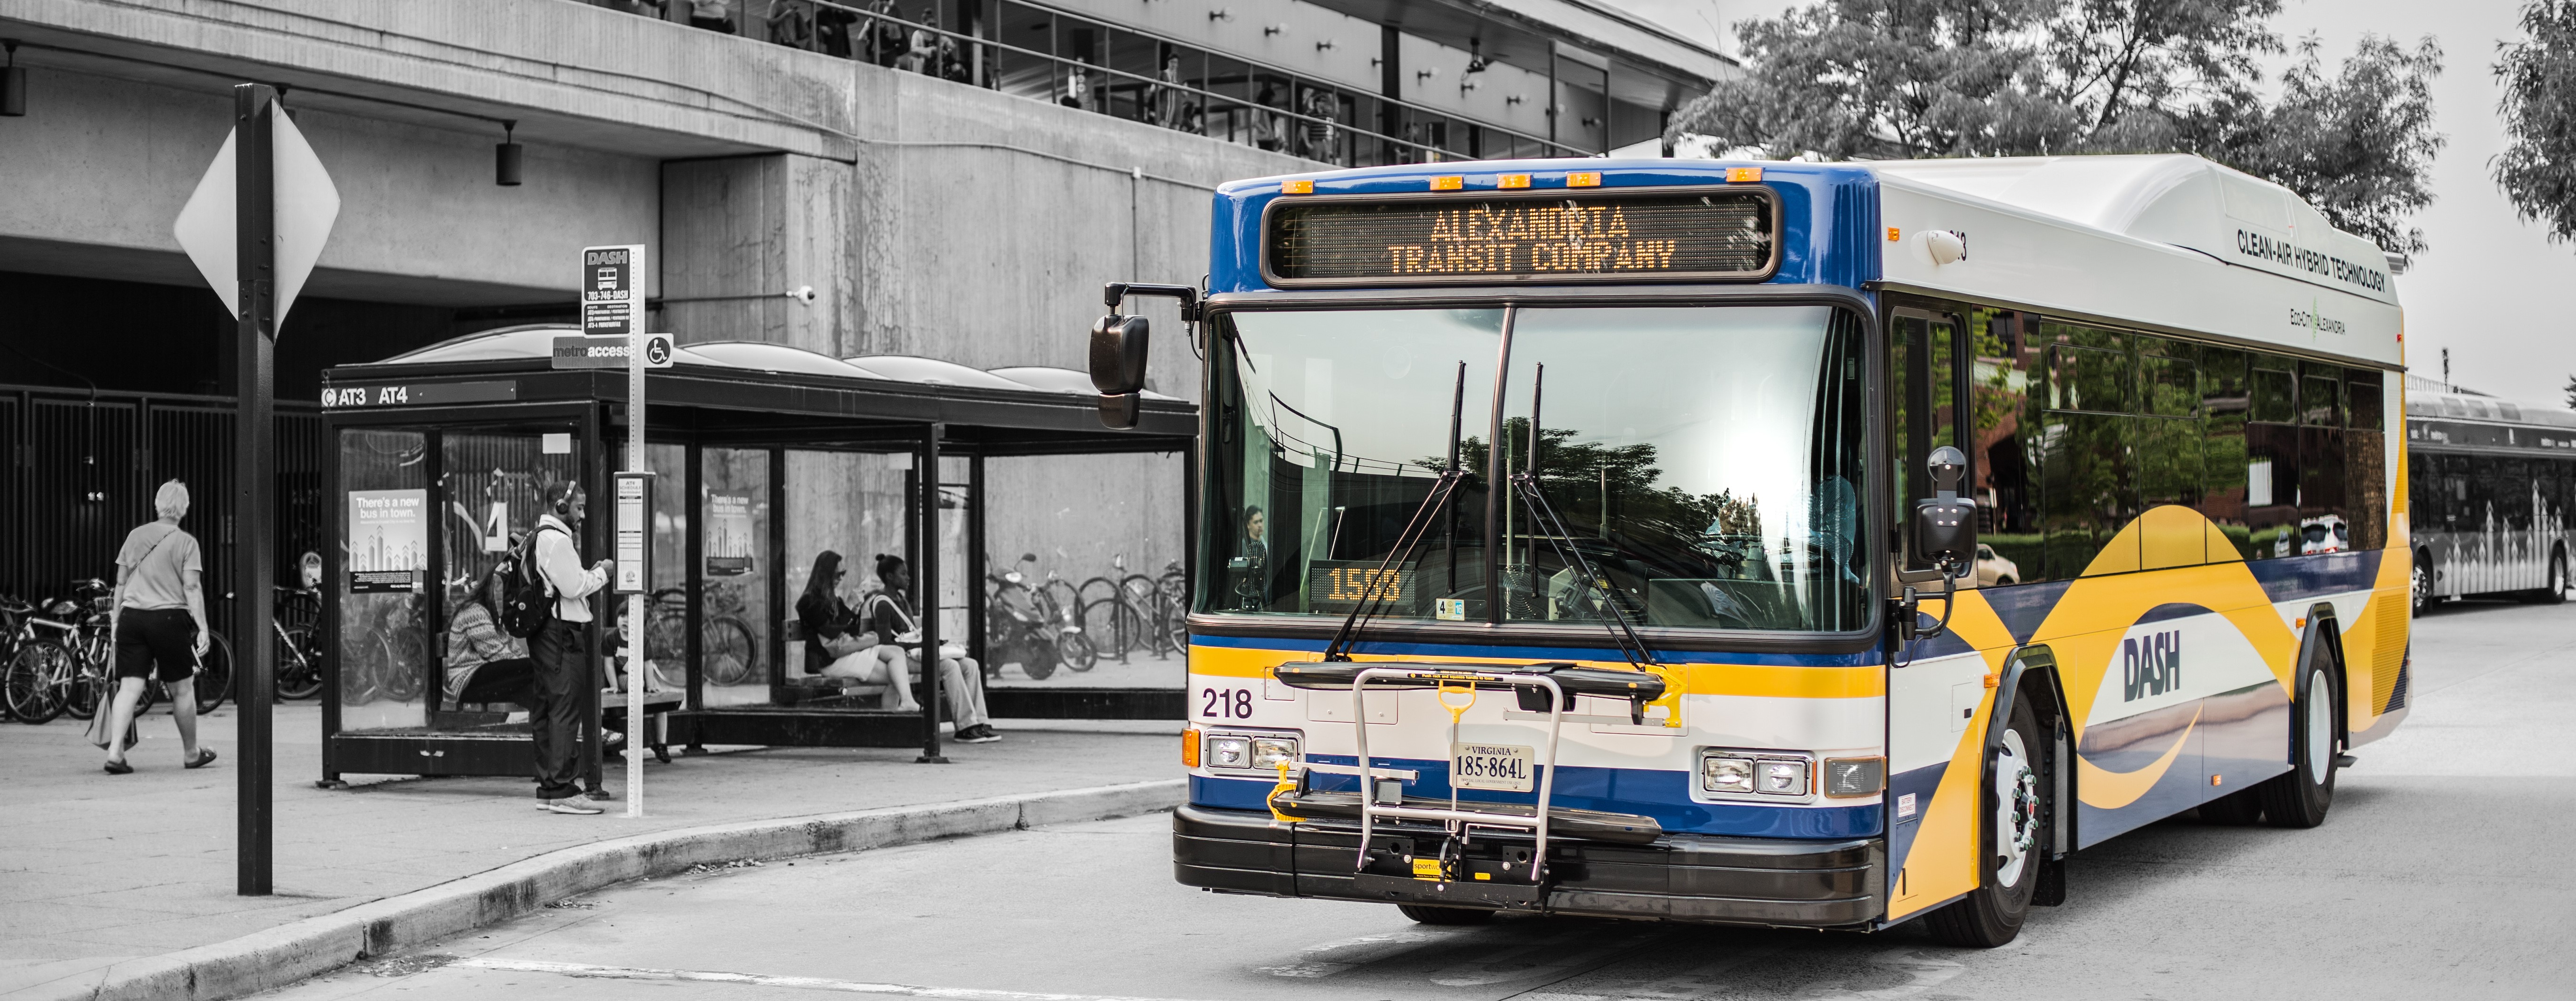 the alexandria transit company - welcome aboard | business view magazine